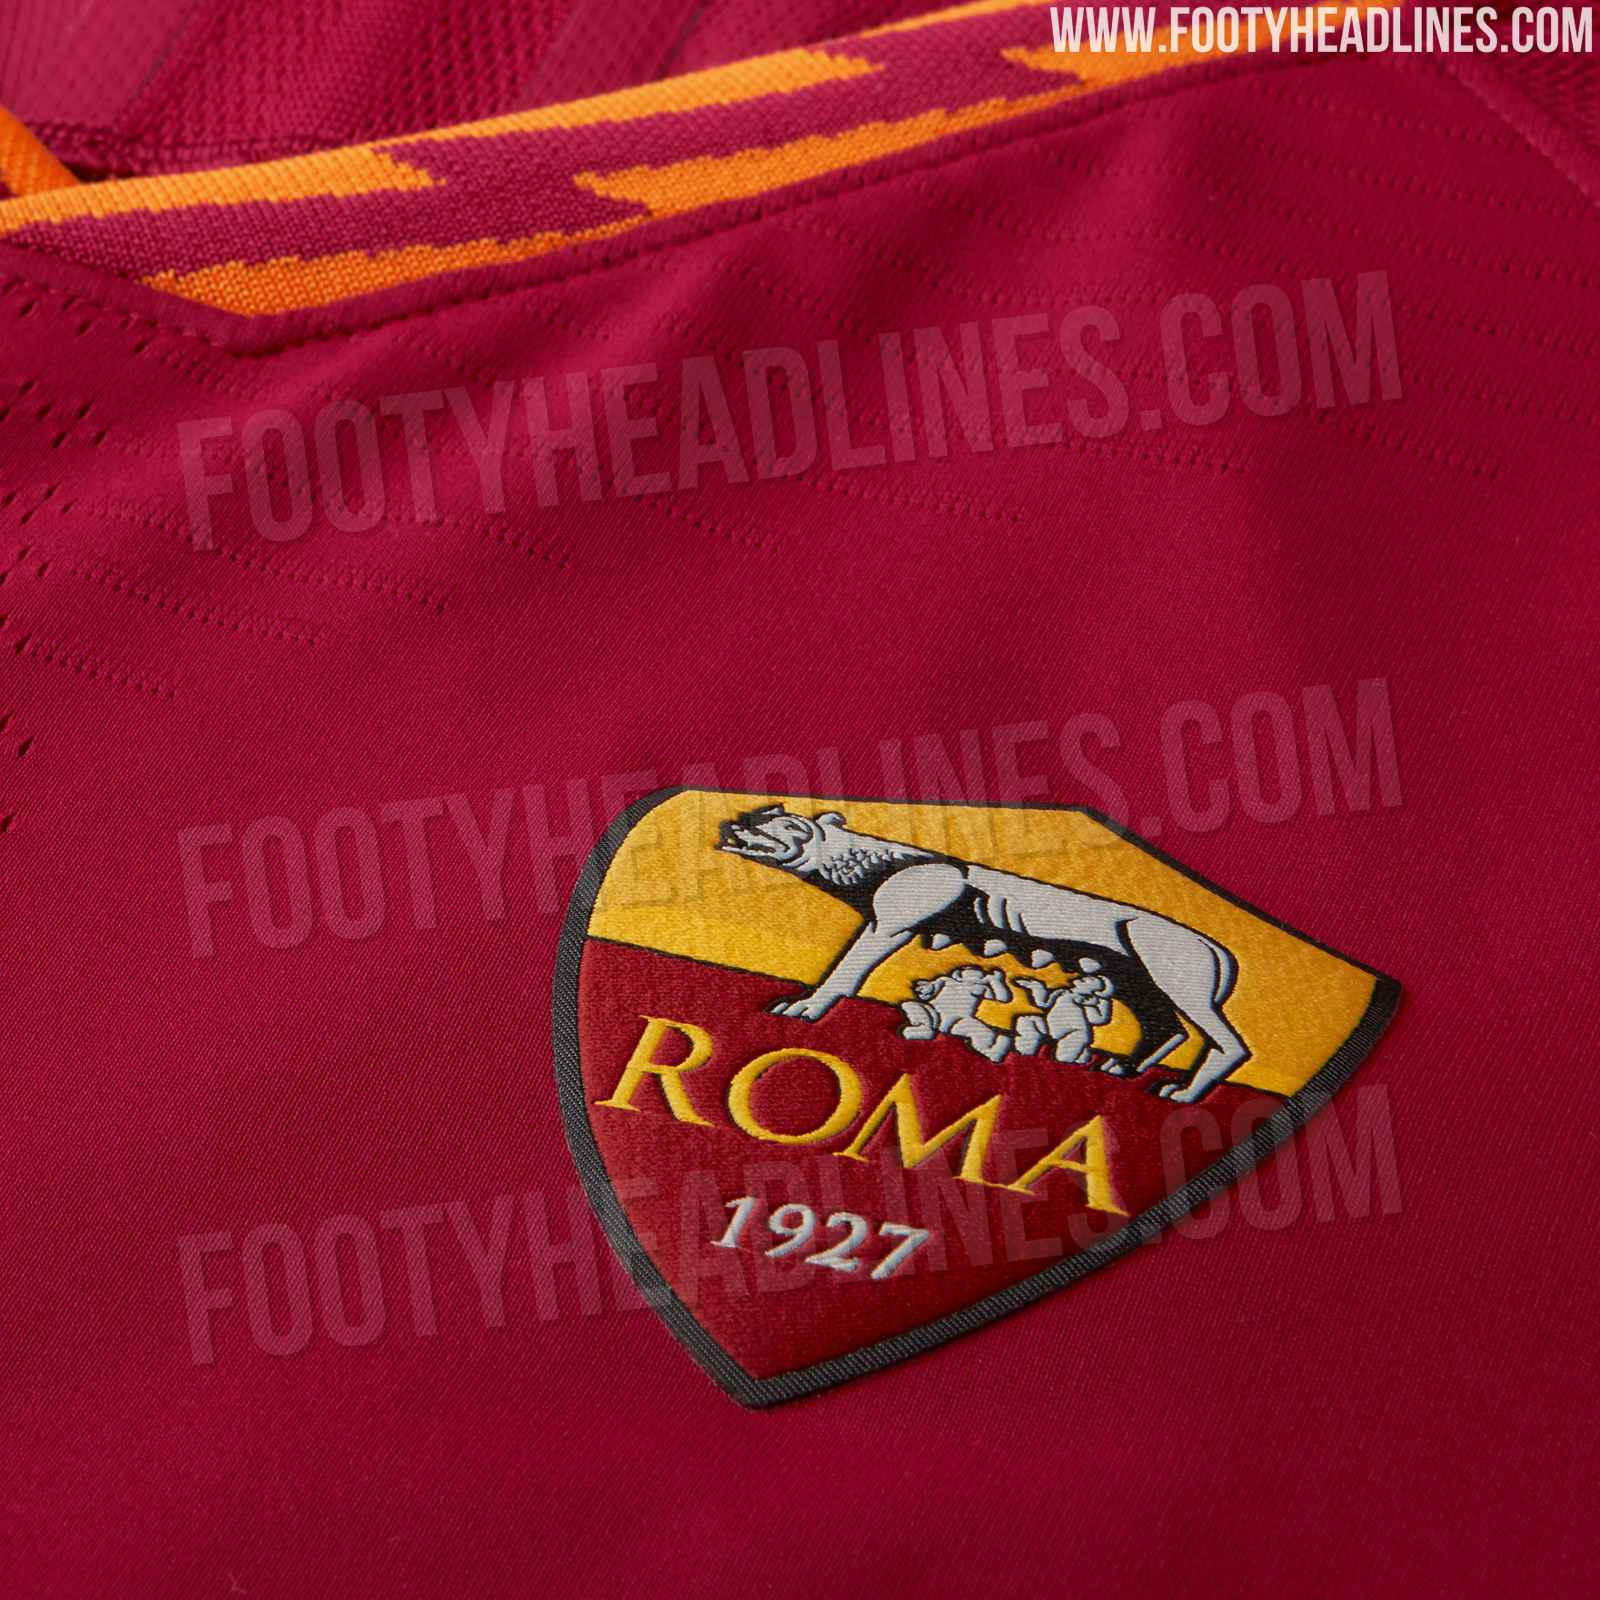 ffb94cbeed8 Six New Pictures  Nike AS Roma 19-20 Home Kit Leaked. Shop Serie A at Classic  Football Shirts Buy now. Get 10% OFF everything at CFS using our code FH10